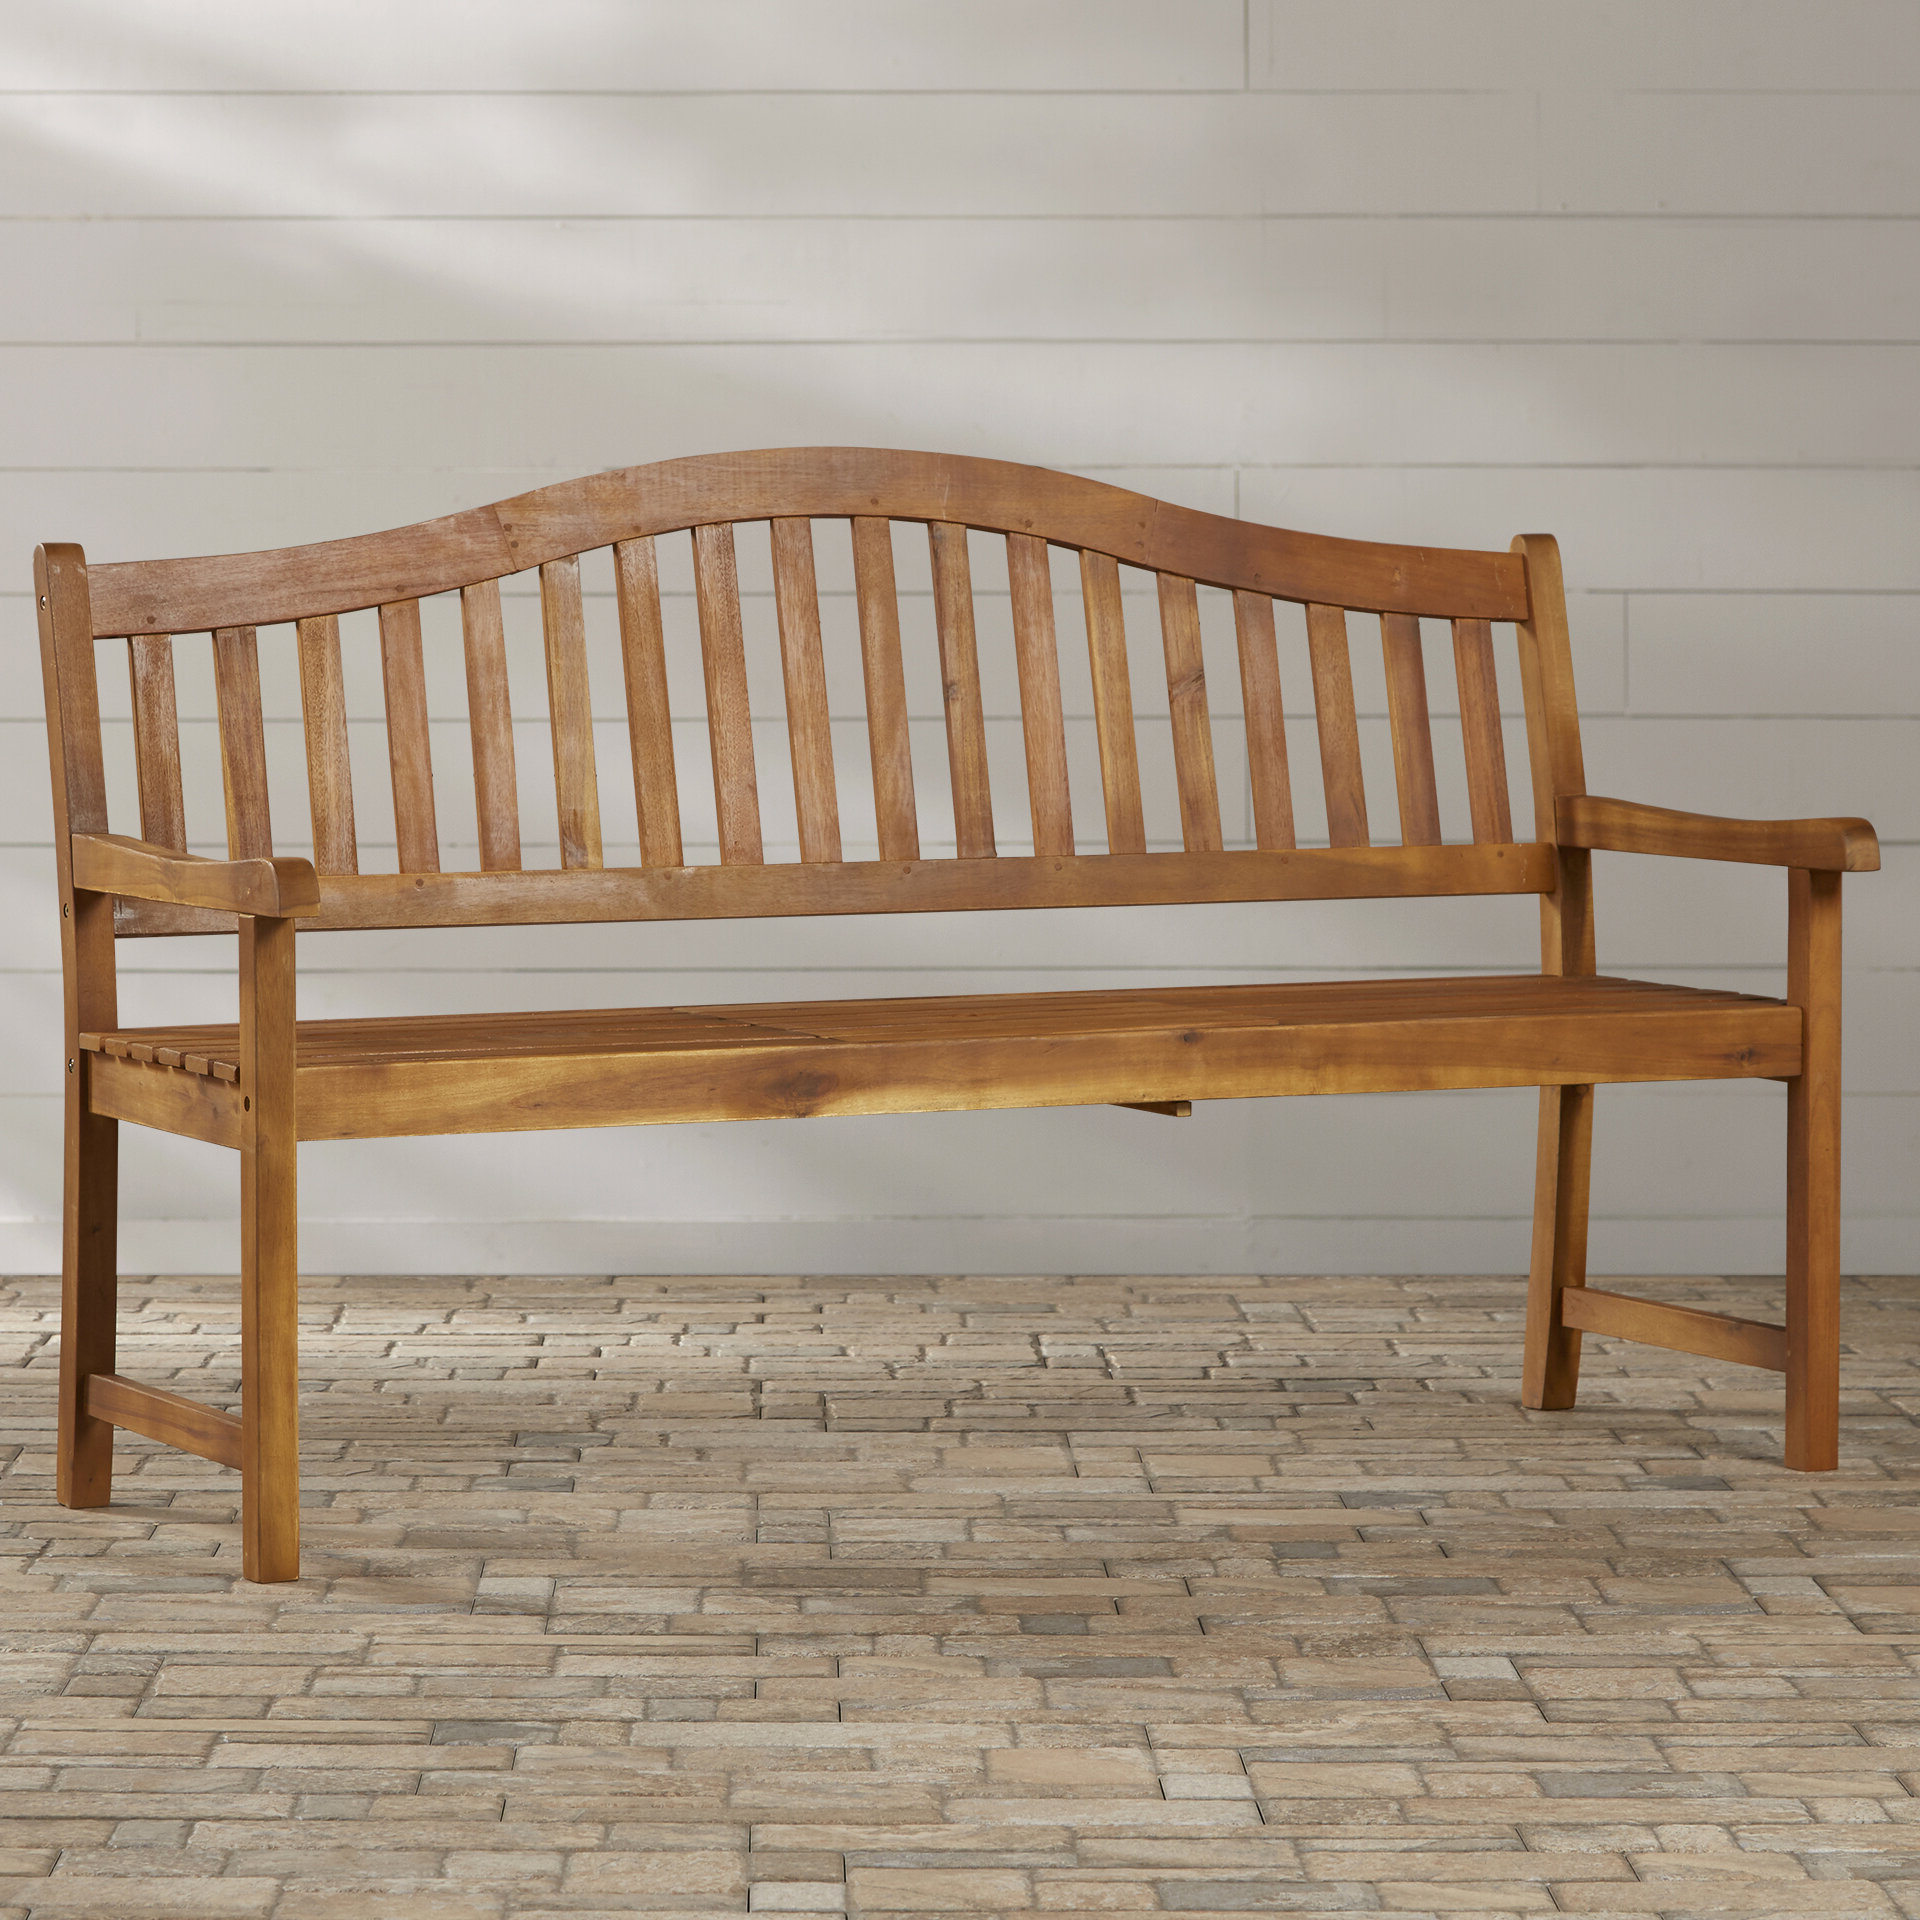 Preferred Volusia Wooden Garden Bench Intended For Wallie Teak Garden Benches (View 26 of 30)